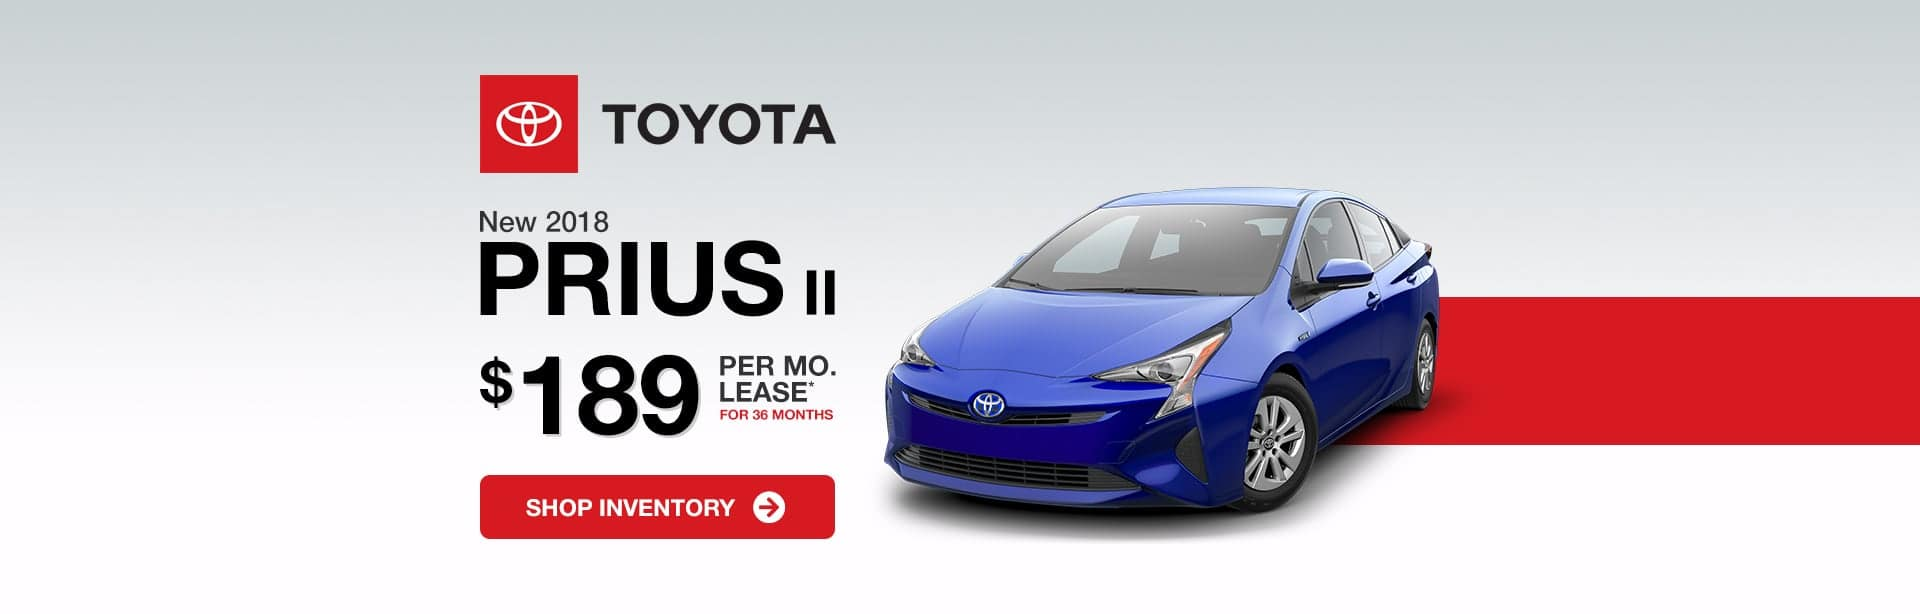 Toyota Prius II Lease Special near Taylorsville, Indiana